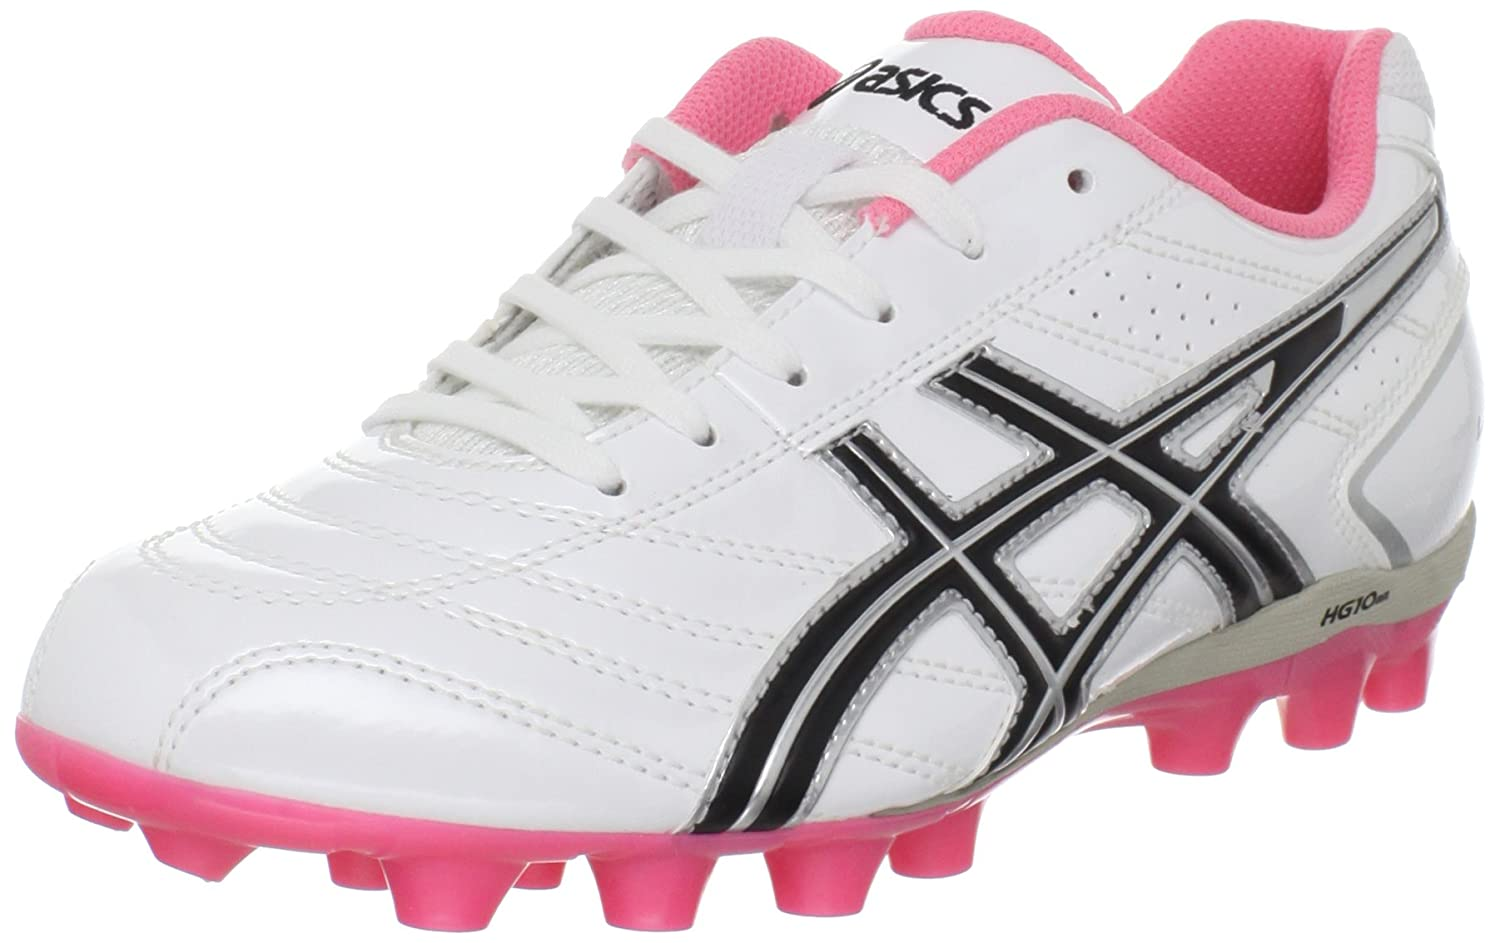 ASICS Lethal GS 4 Soccer Shoe (Little Kid/Big Kid) C001Y.0150